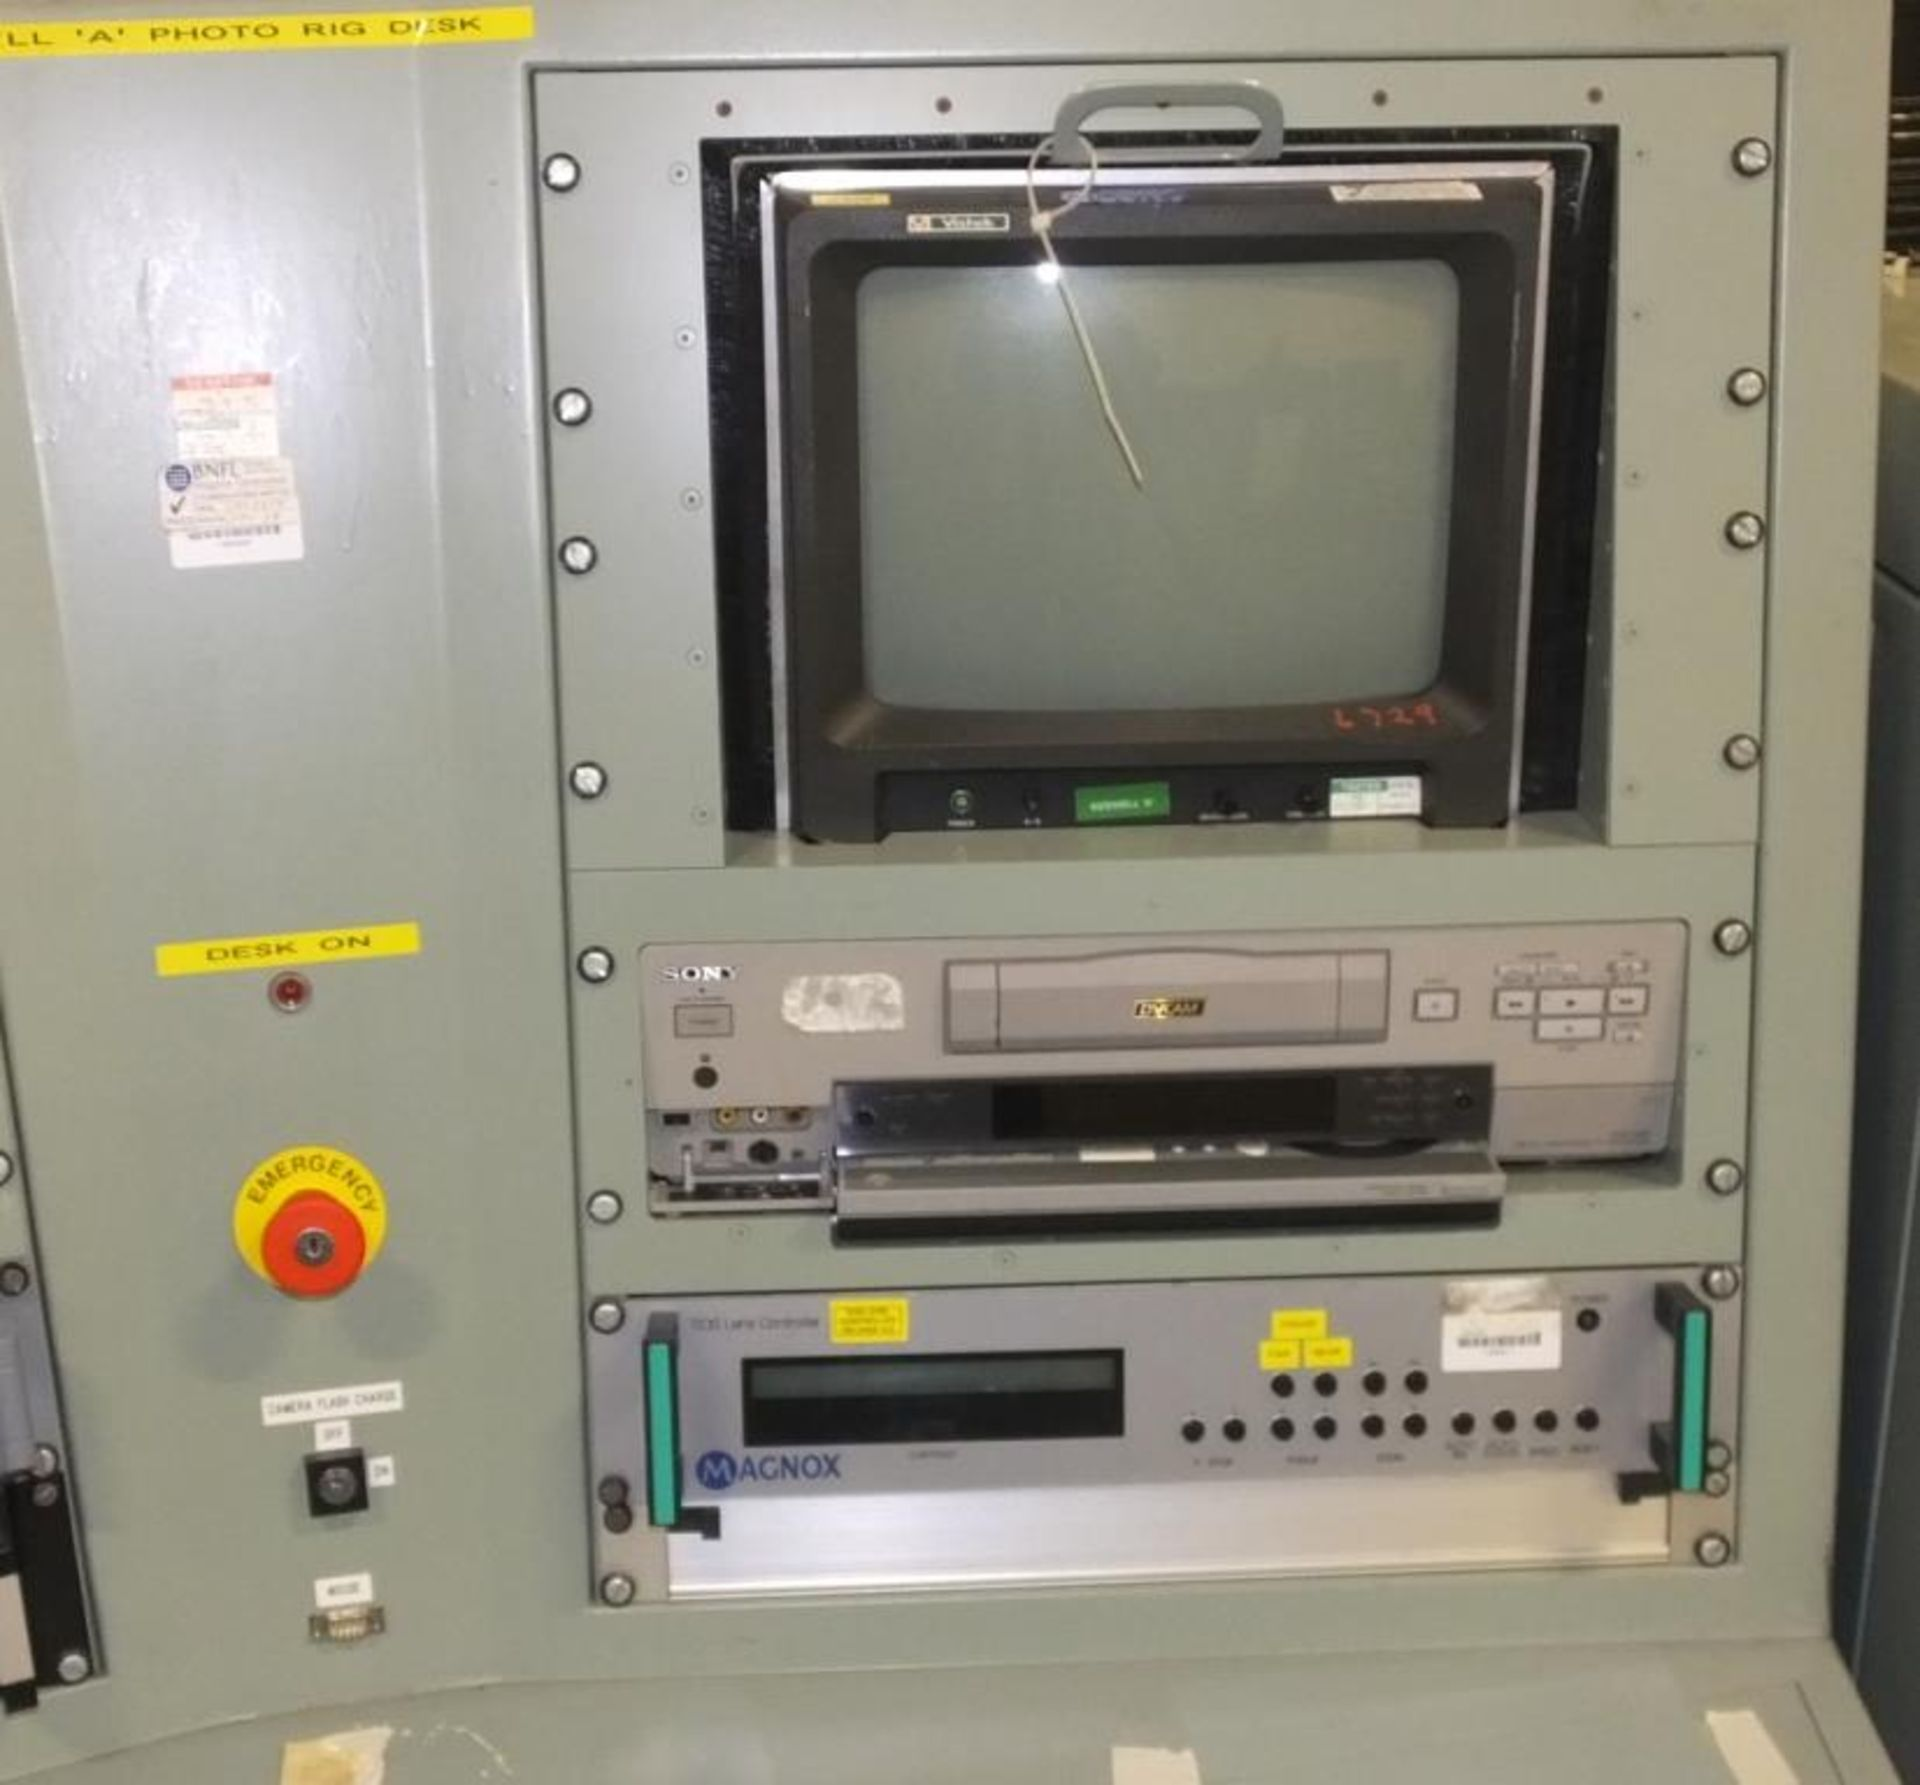 Ex Nuclear Plant Reactor Control / Monitoring System - Image 13 of 25